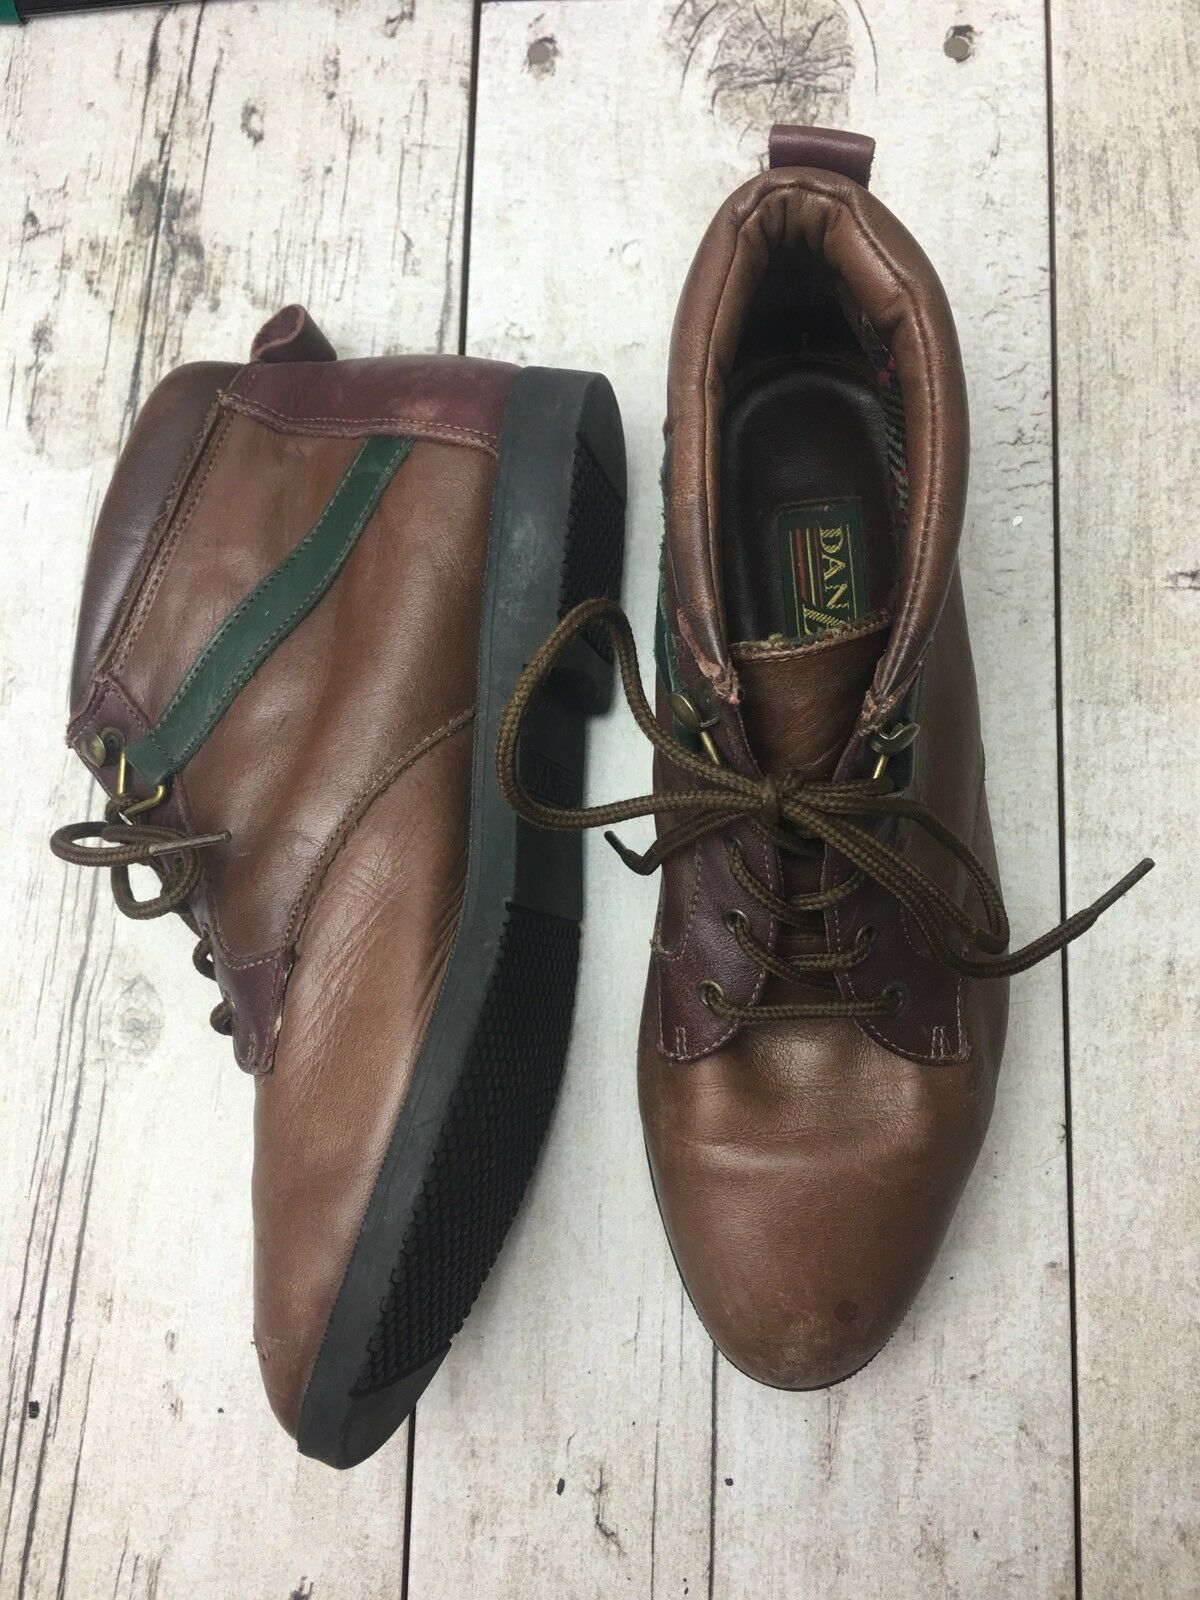 Danexx Boots Size 5.5 M Ankle Lace up Brown Green Red Leather Women's Kale 3